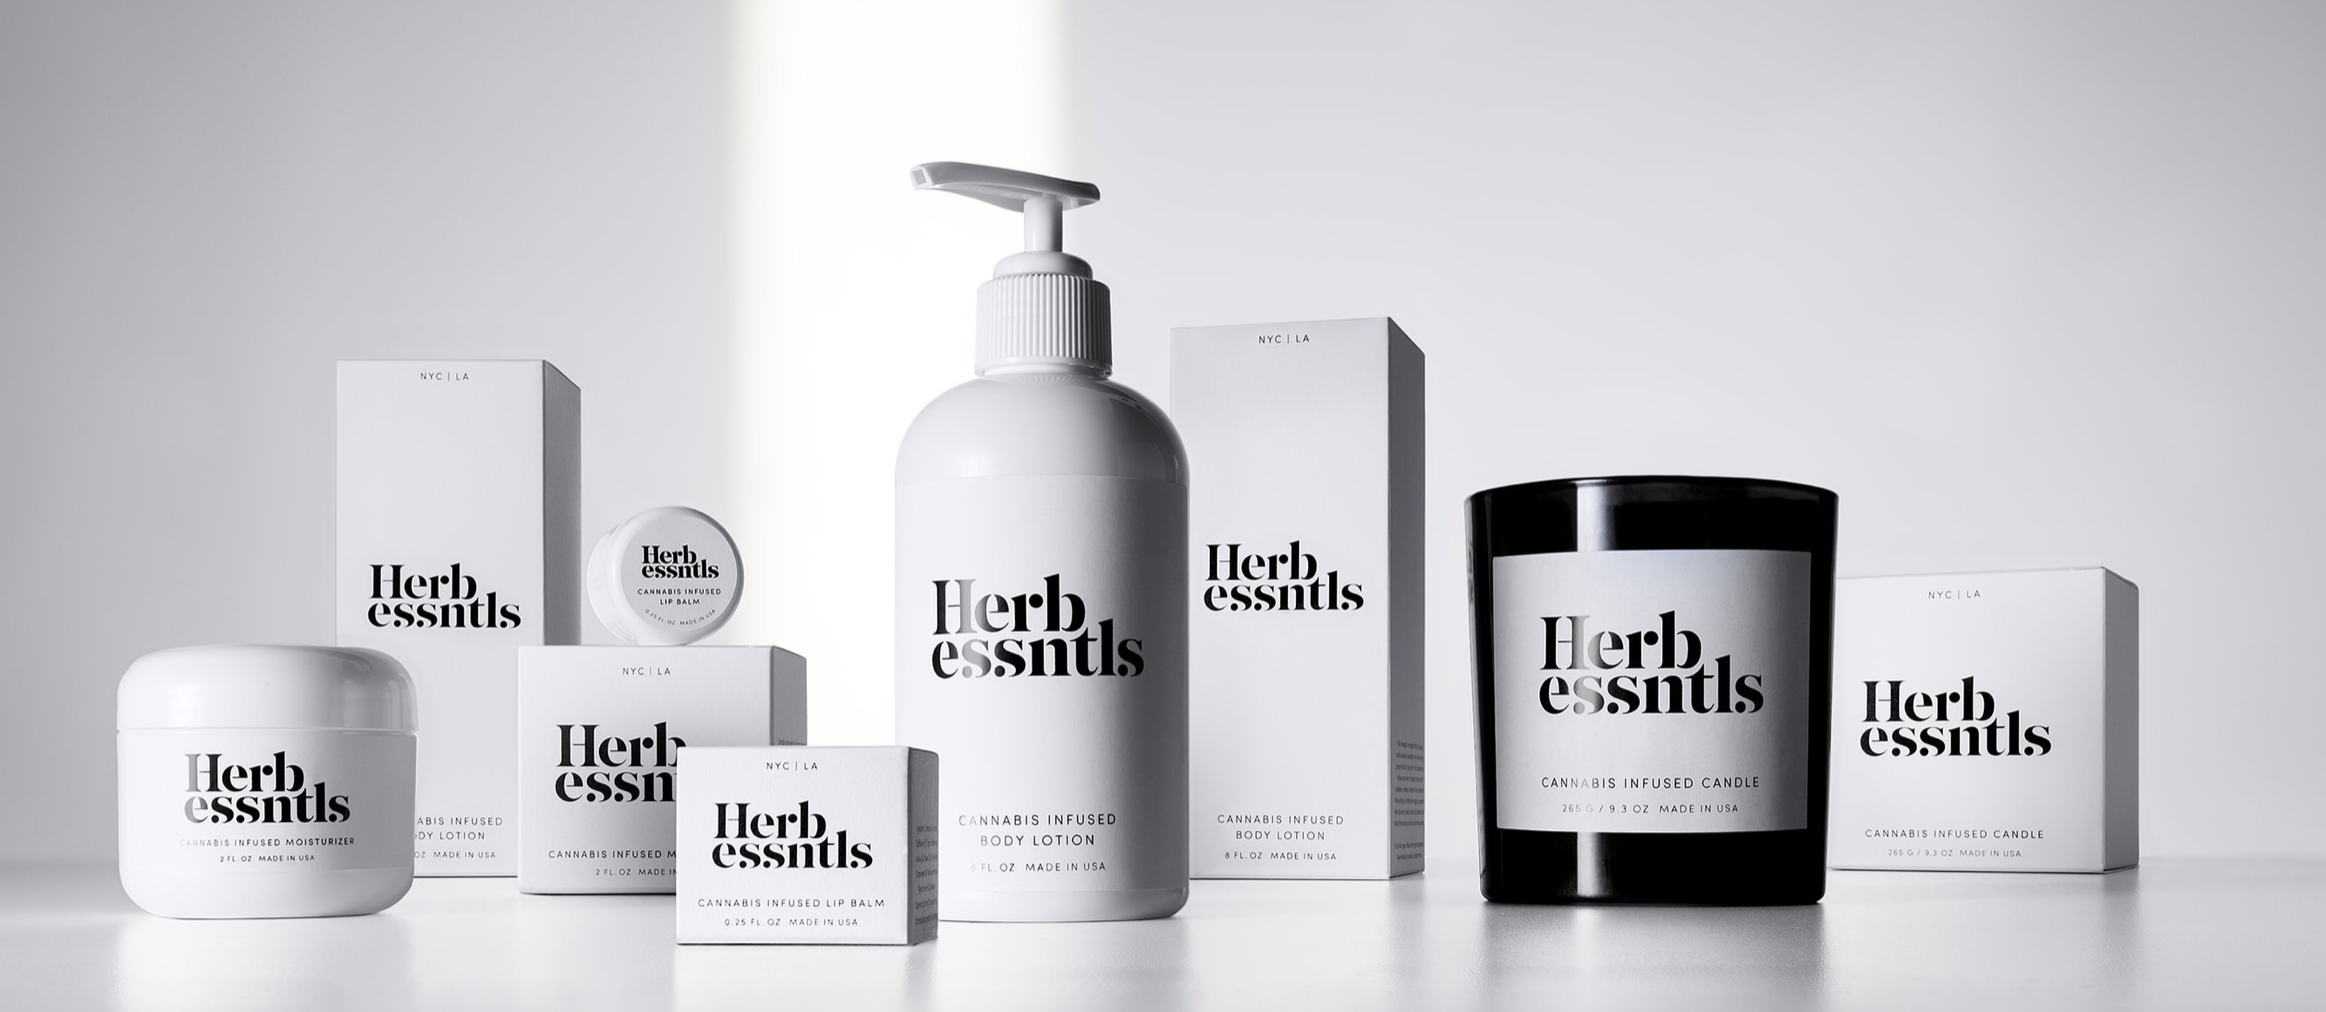 Herb Essntls - Cannabis infused skincare